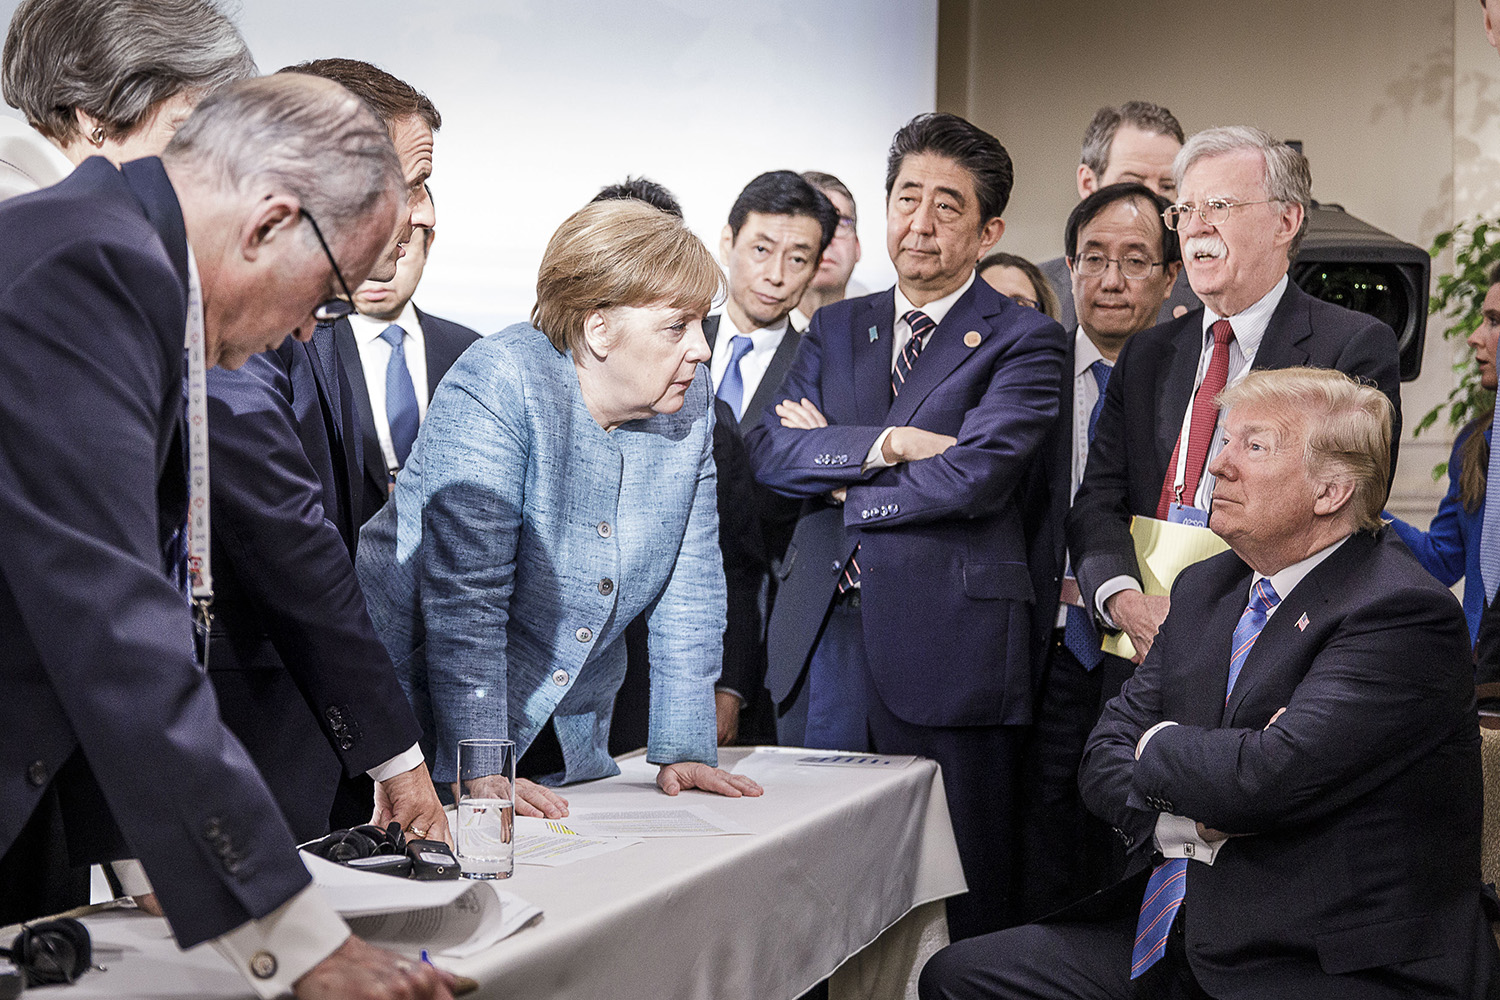 In a photo provided by the German Government Press Office, German Chancellor Angela Merkel deliberates with U.S. President Donald Trump on the sidelines of the G-7 summit in Charlevoix, Canada, on June 9, 2018.